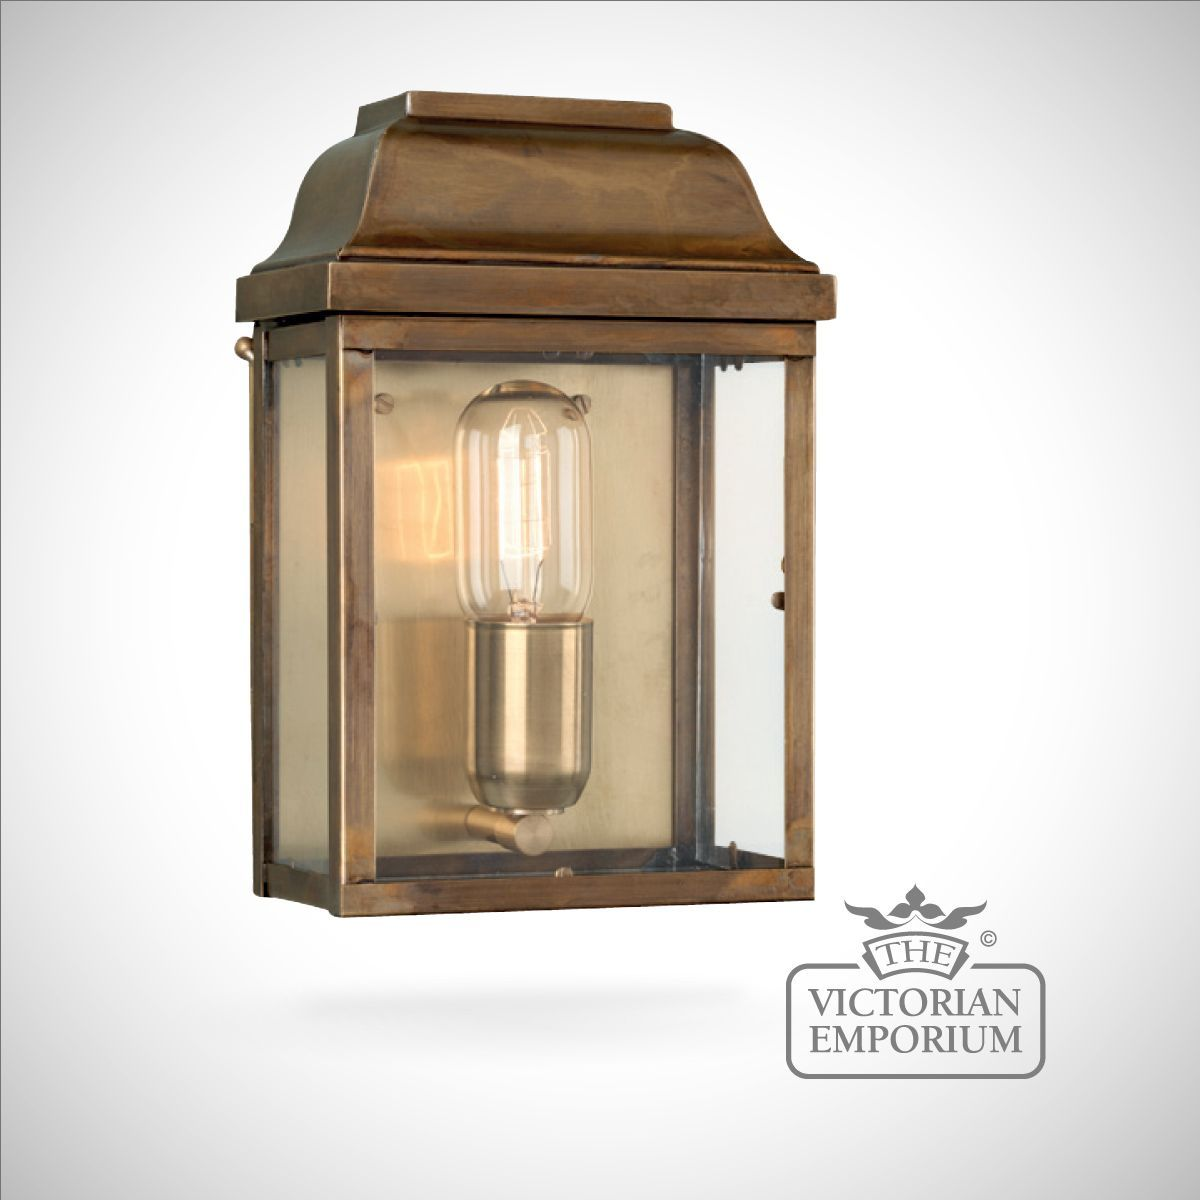 Buy Victoria wall lantern - antique br, Outdoor Wall Lights ... on exterior ceiling lights, exterior doors, exterior moon lights, exterior box lights, large exterior lights, pendant lights, exterior flood lights, exterior fruit lights, exterior rope lights, exterior bowl lights, exterior sconce lights, exterior blue lights, exterior dome lights, exterior globe lights, exterior torch lights, exterior christmas decorations, asian lanterns lights, exterior mirror lights, exterior black lights, exterior night lights,